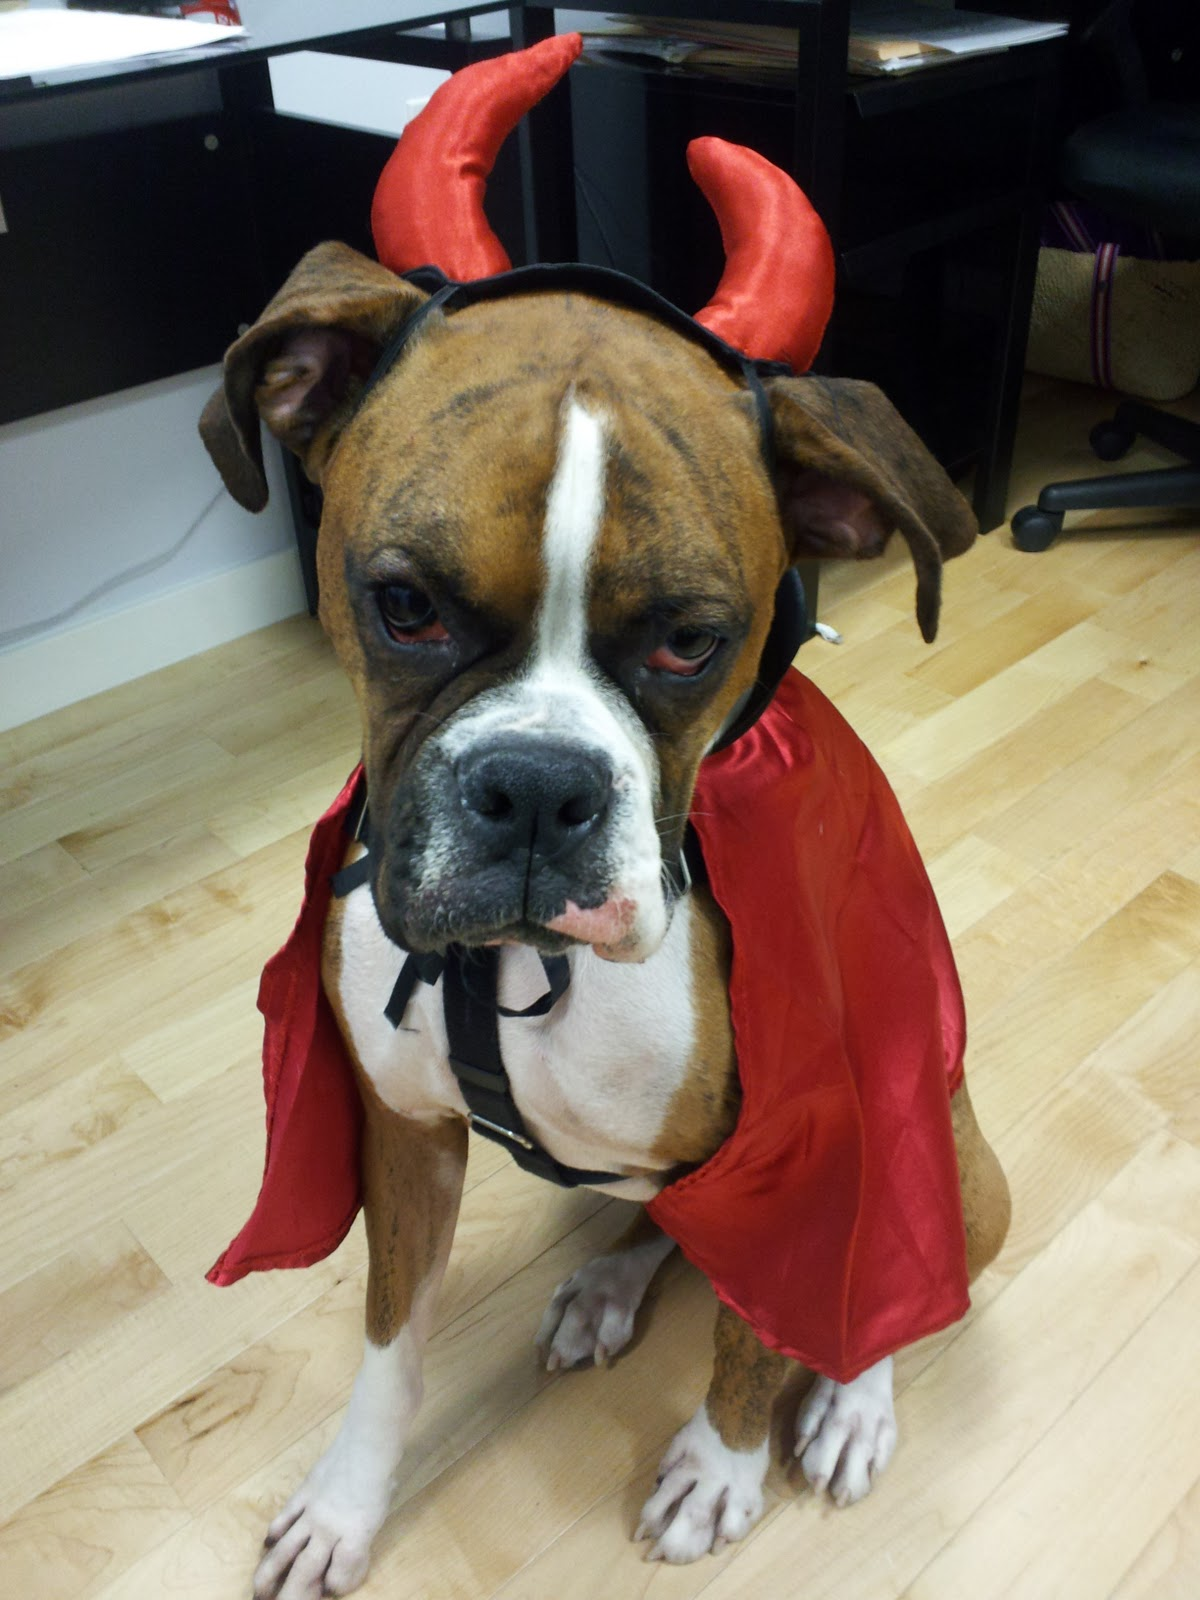 ... right he made that decision all by himself he s going as a devil dog